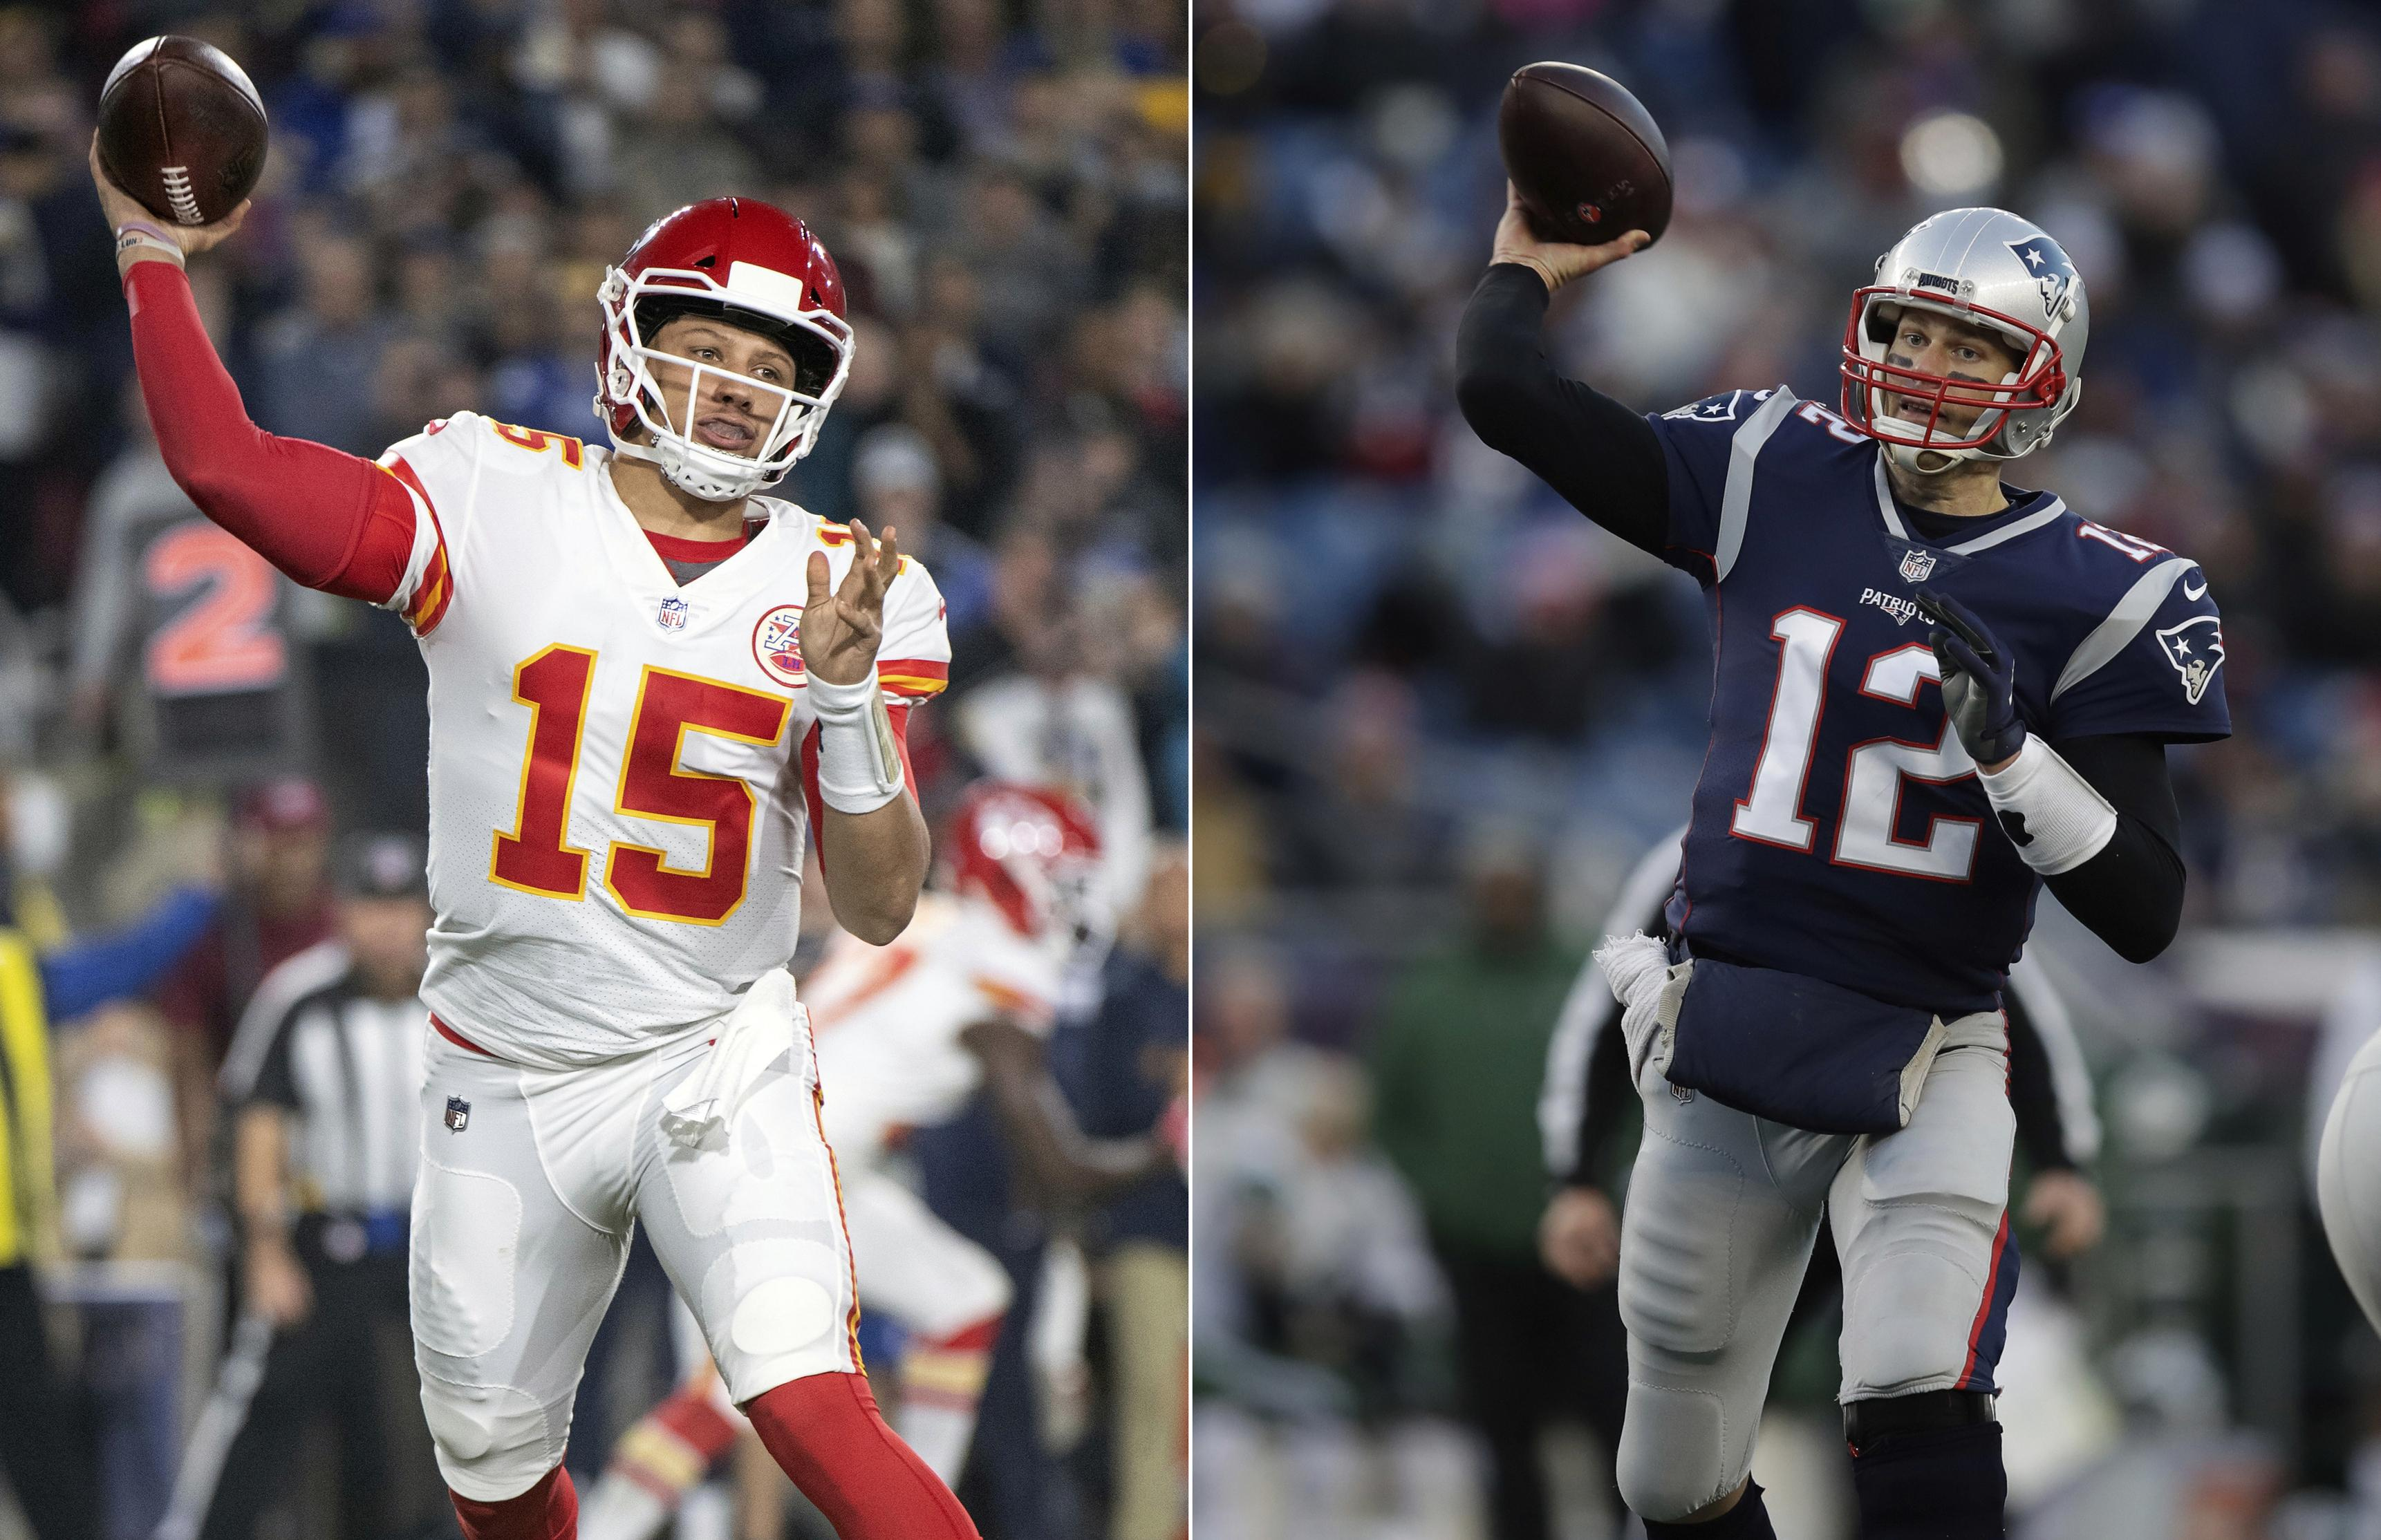 cheaper 669f8 81ab7 At left, Kansas City Chiefs quarterback Patrick Mahomes throws a pass  against the Los Angeles